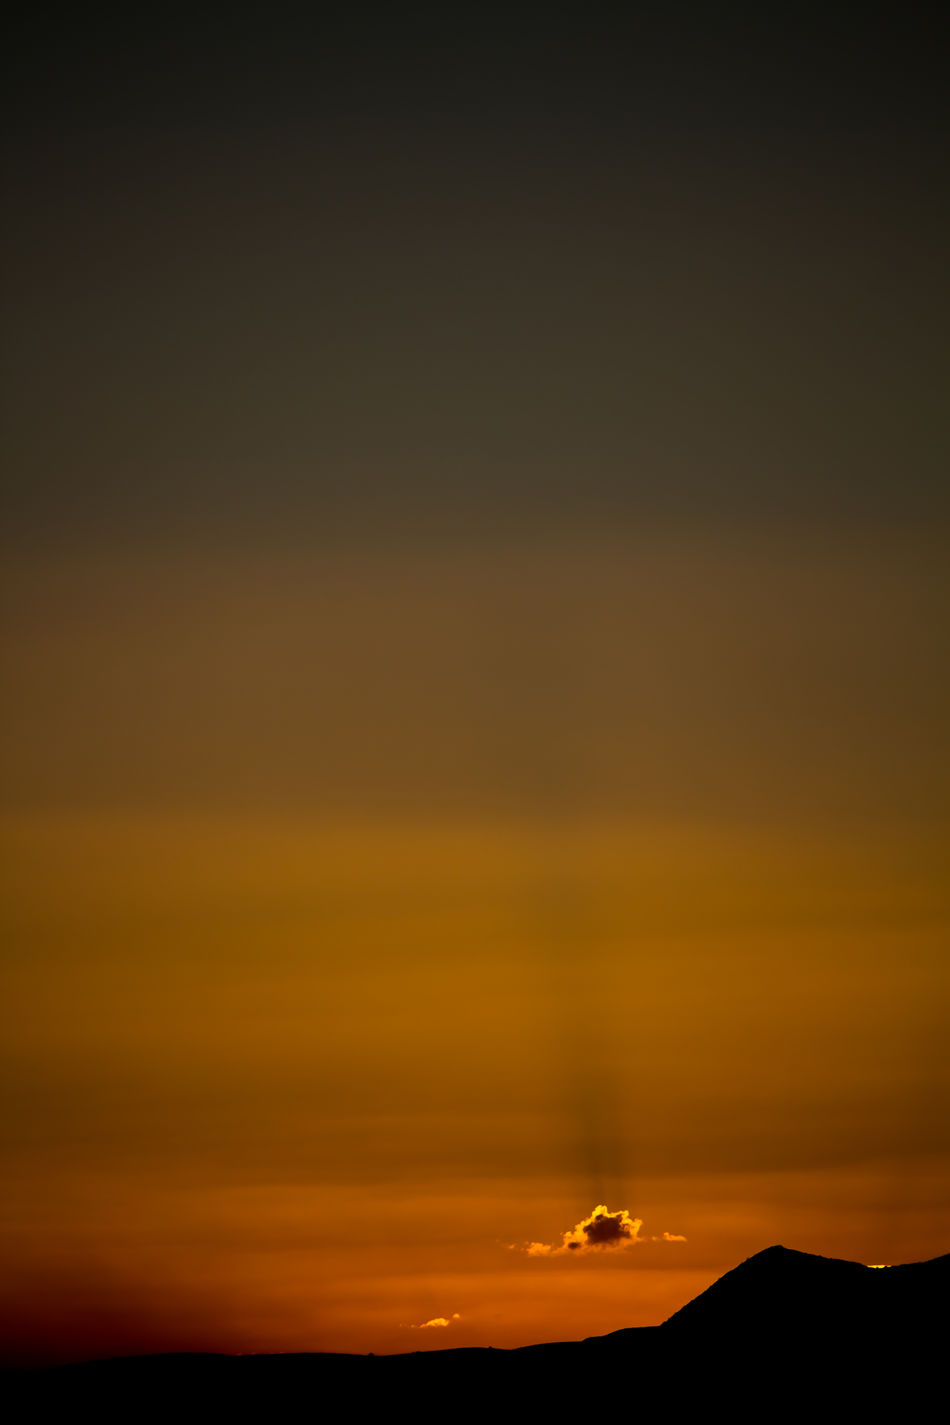 Another little alone cloud Lonely Minimalist Hidden Gems  43 Golden Moments No People Sunset_collection Orange Color Beauty In Nature Sunset Majestic Colorful Colors Wide Outdoors Landscape Sky Nature Dramatic Sky Freedom From My Point Of View Abstract Scenics Shiraz, Iran